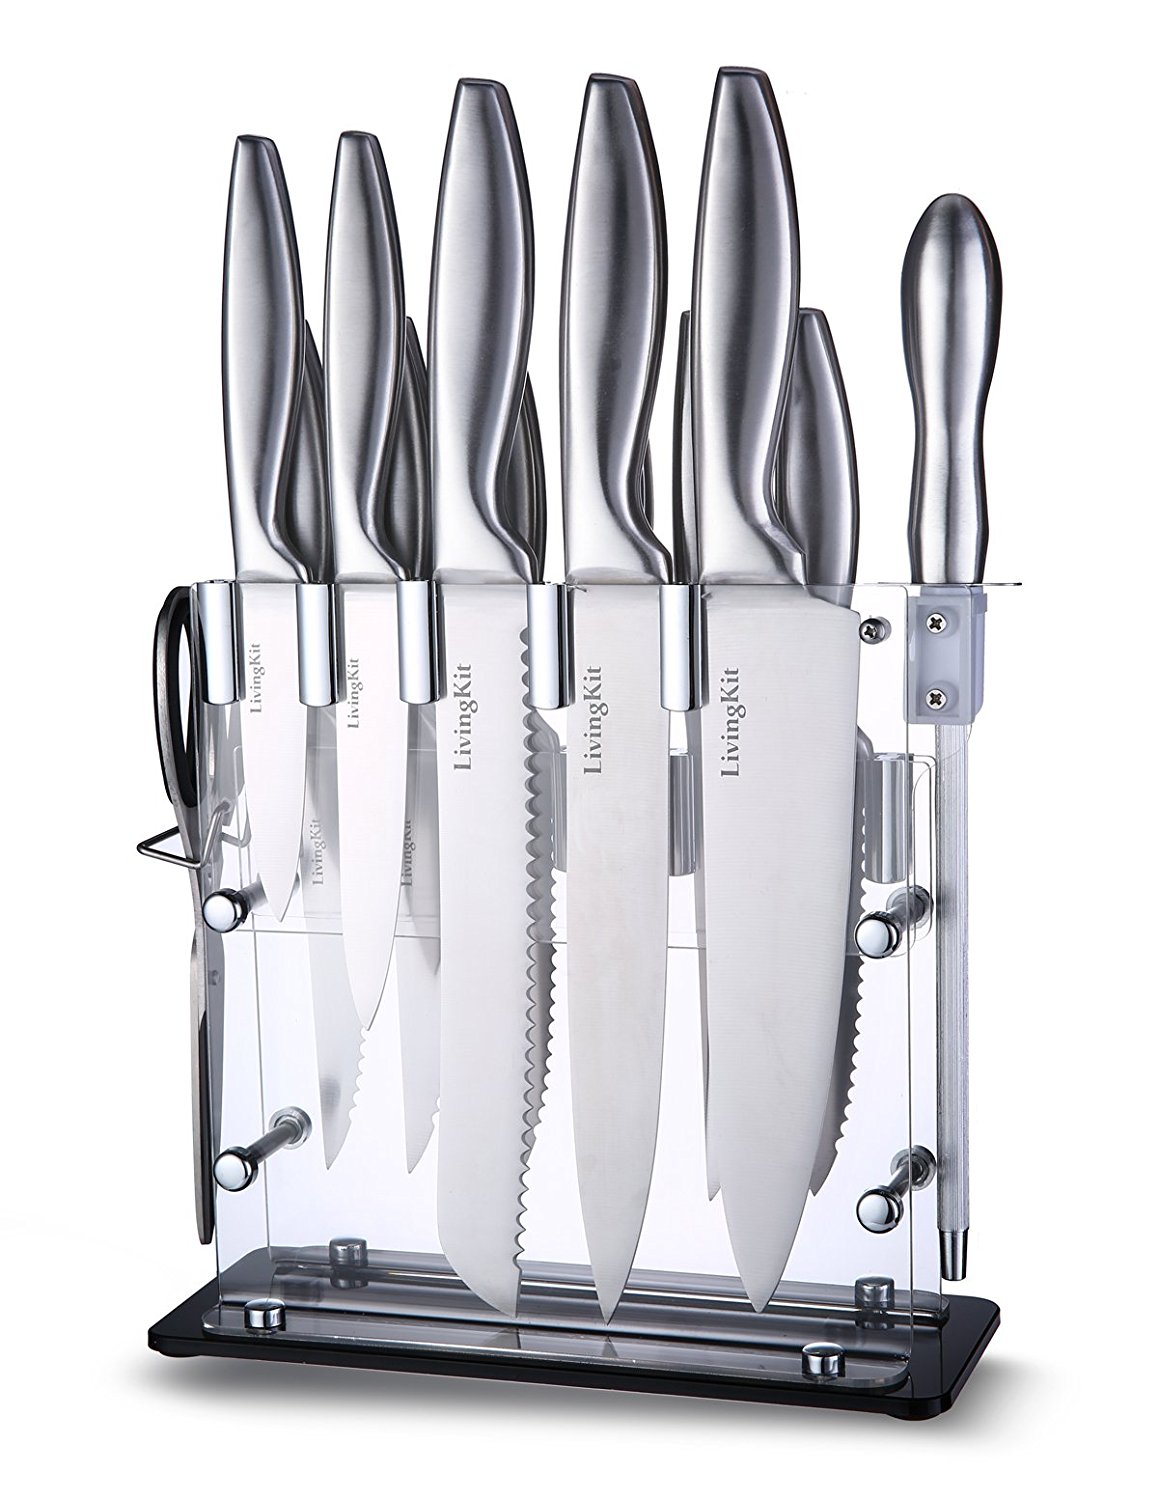 Modernity Knife Sets: Simple Design U0026 Modern Knife Block Made With The  Acrylic Glass Material, Lightweight, Sturdy, Durable, Invisible Cutlery Set  With ...